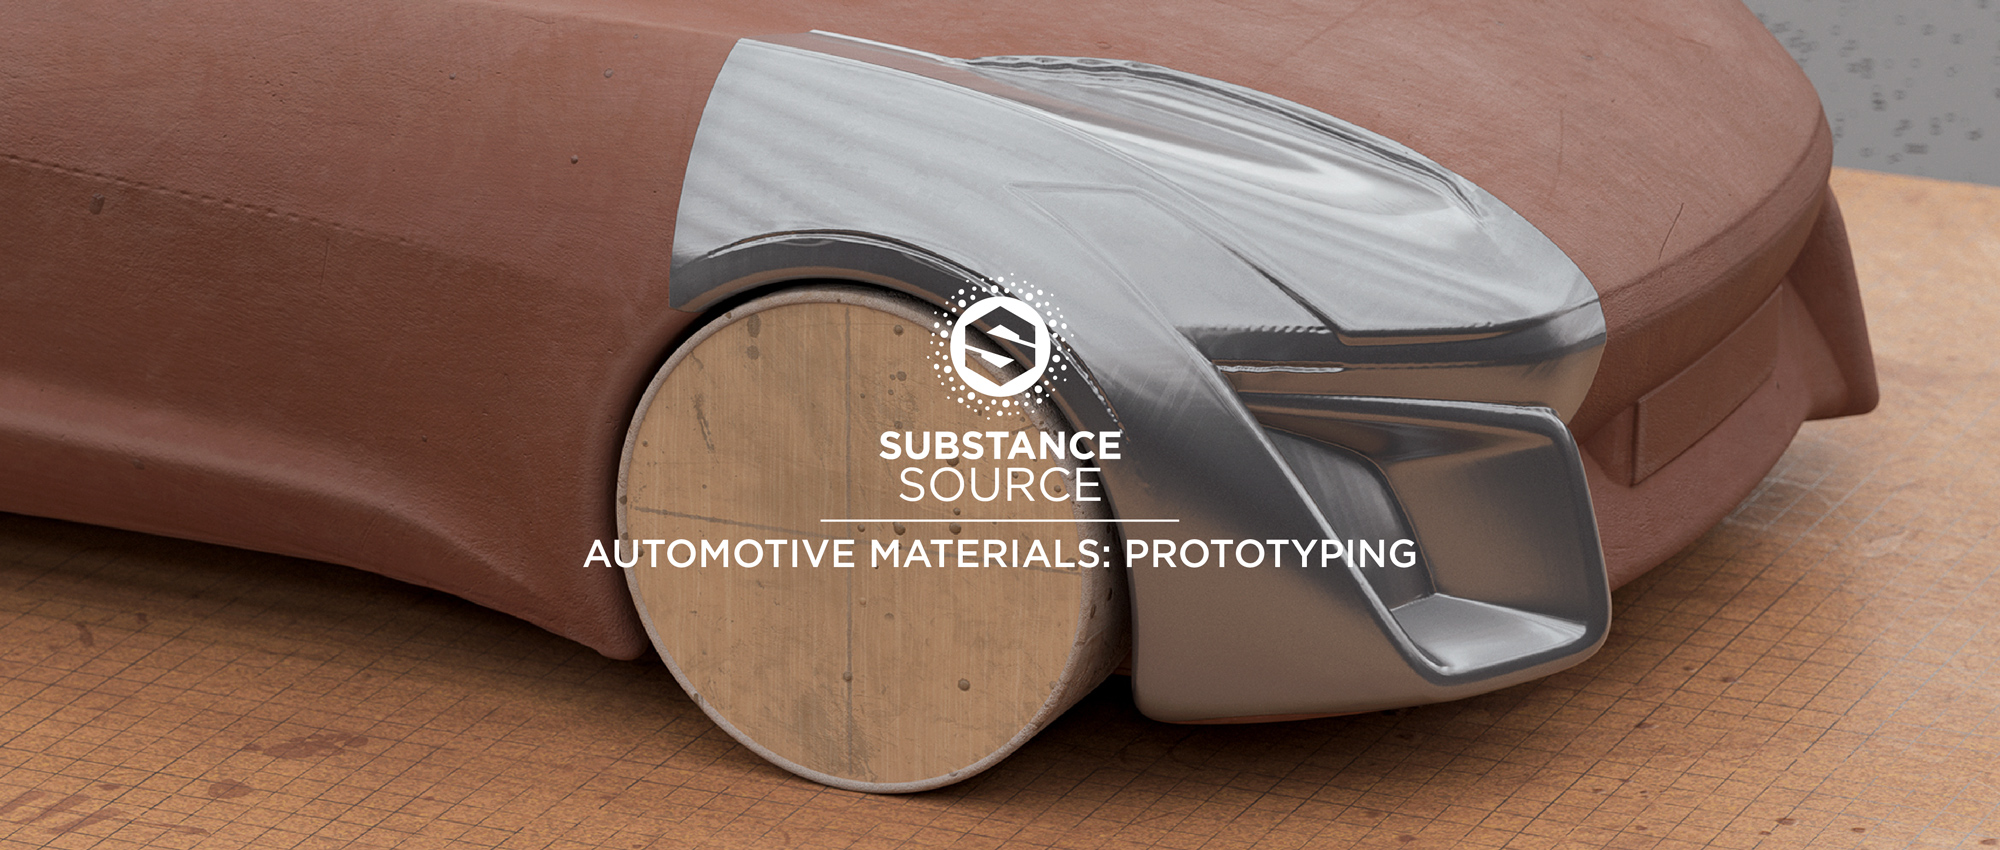 SUBSTANCE SOURCE AUTOMOTIVE MATERIALS: PROTOTYPING | Altec